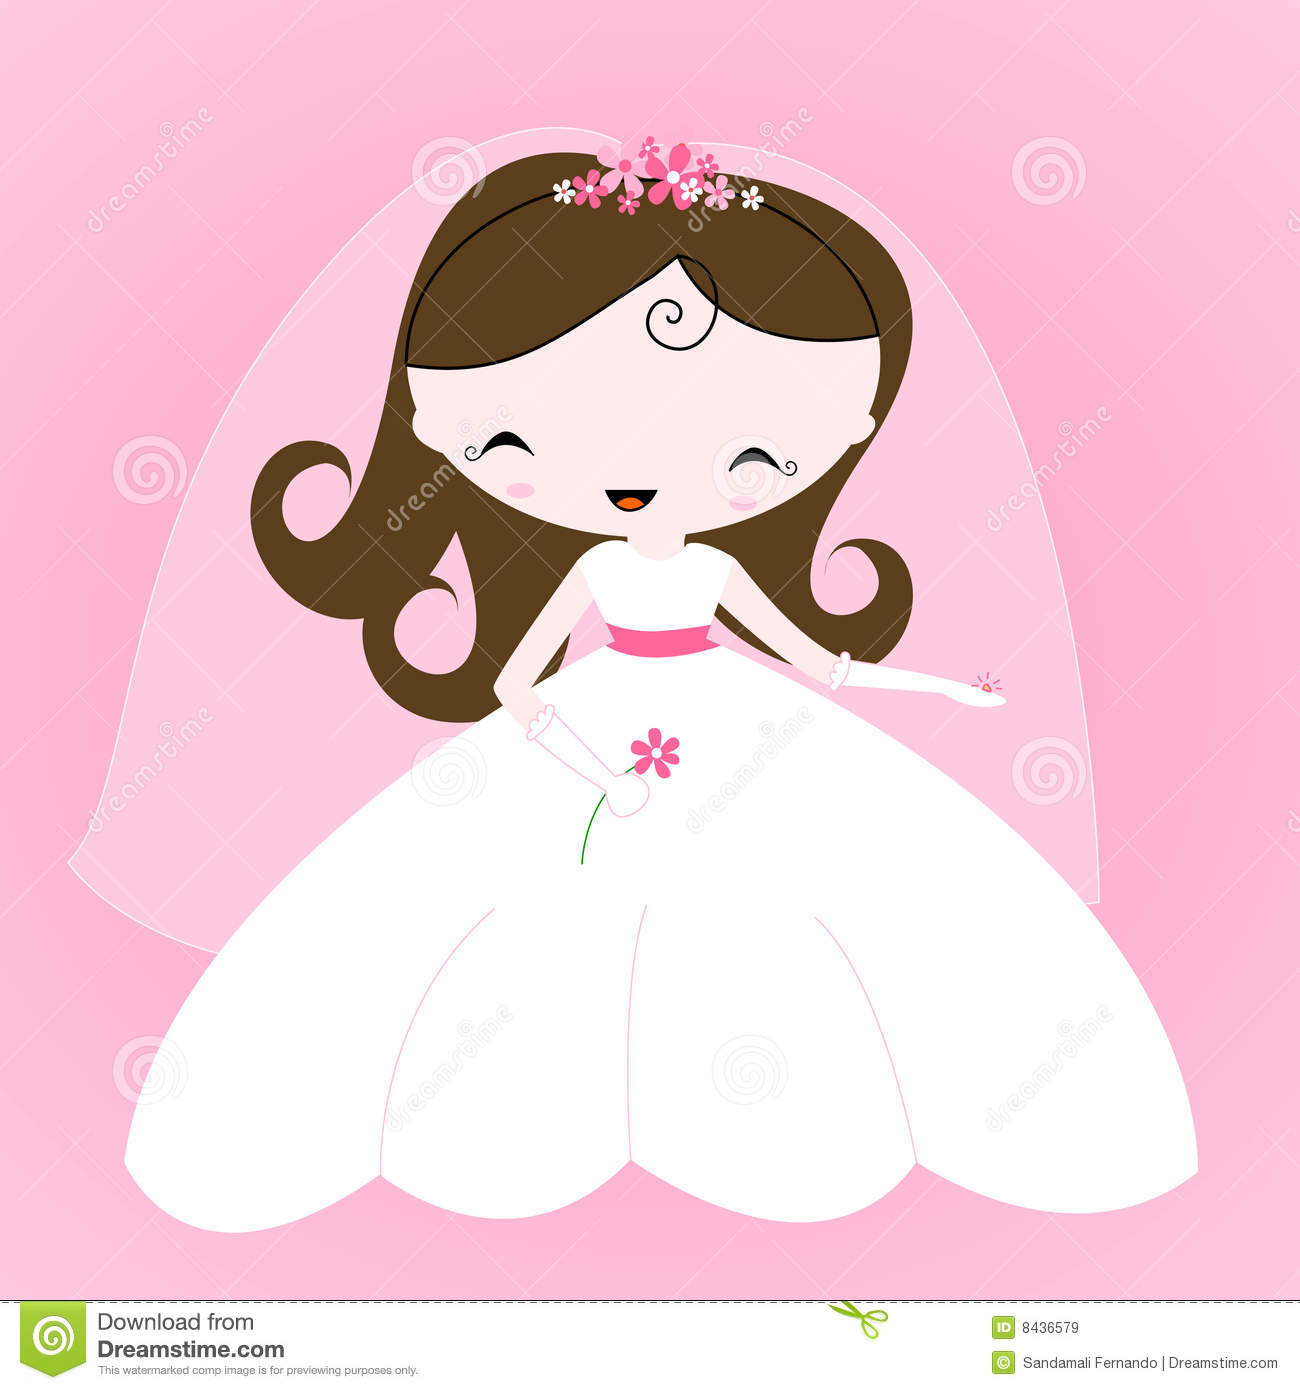 Wedding Hair Style Black Vector Art: Bride Stock Vector. Image Of Dream, Clip, Fashion, Design